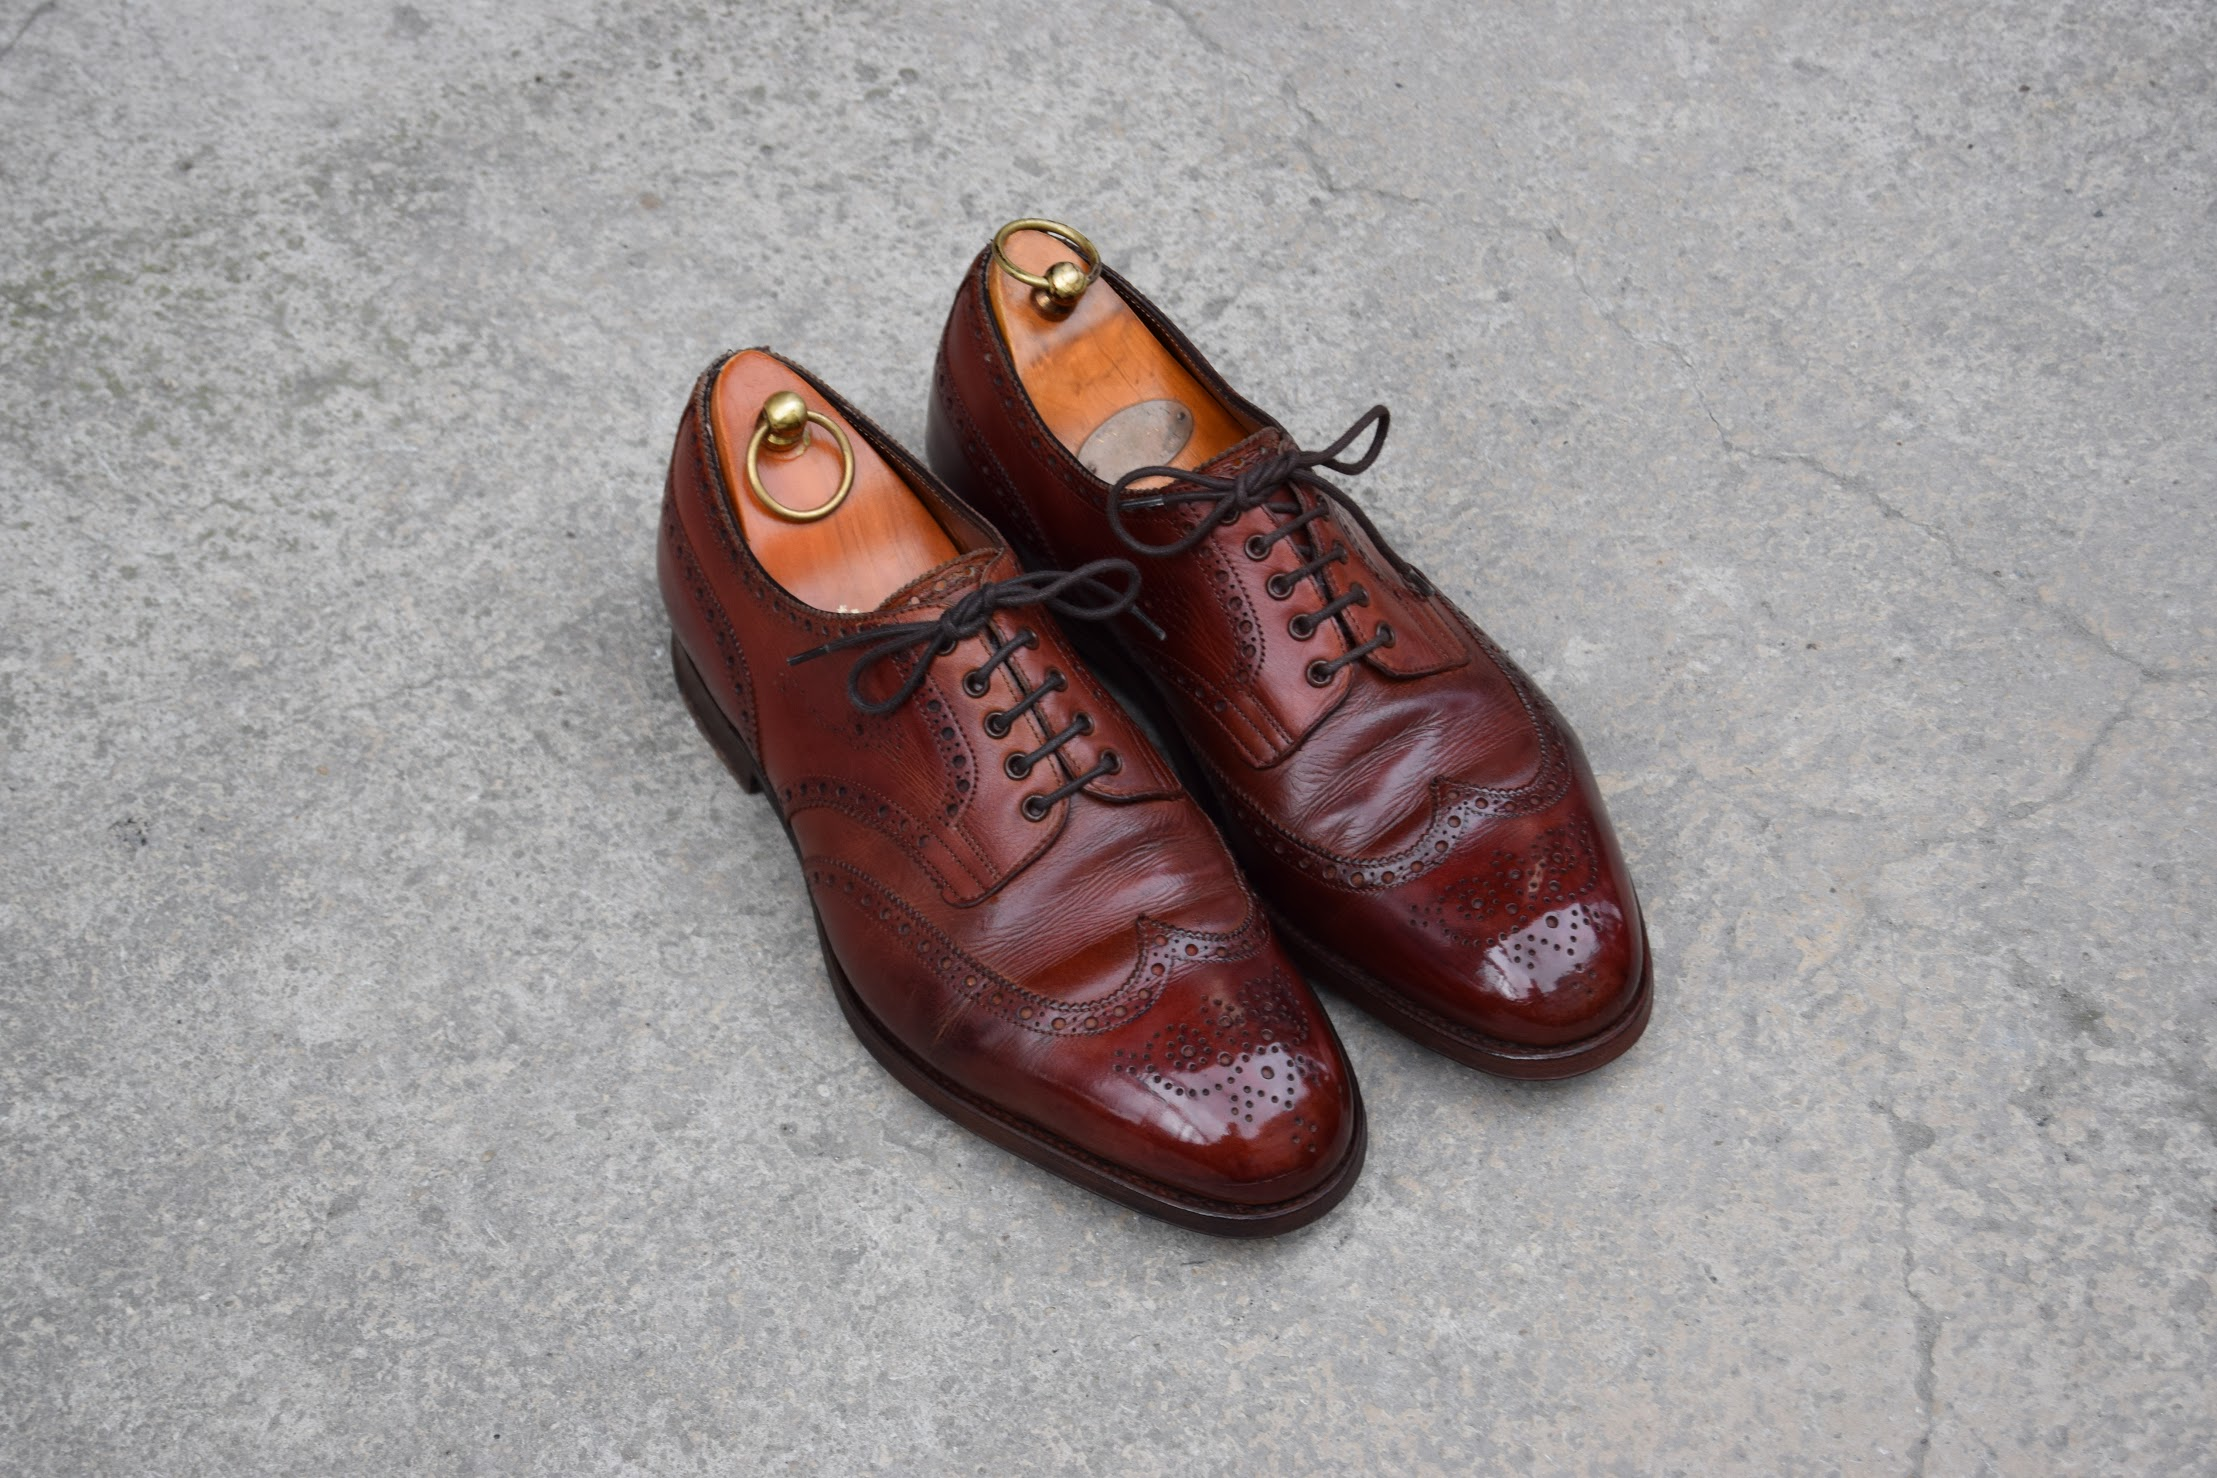 Shoes After a good shoe shine.